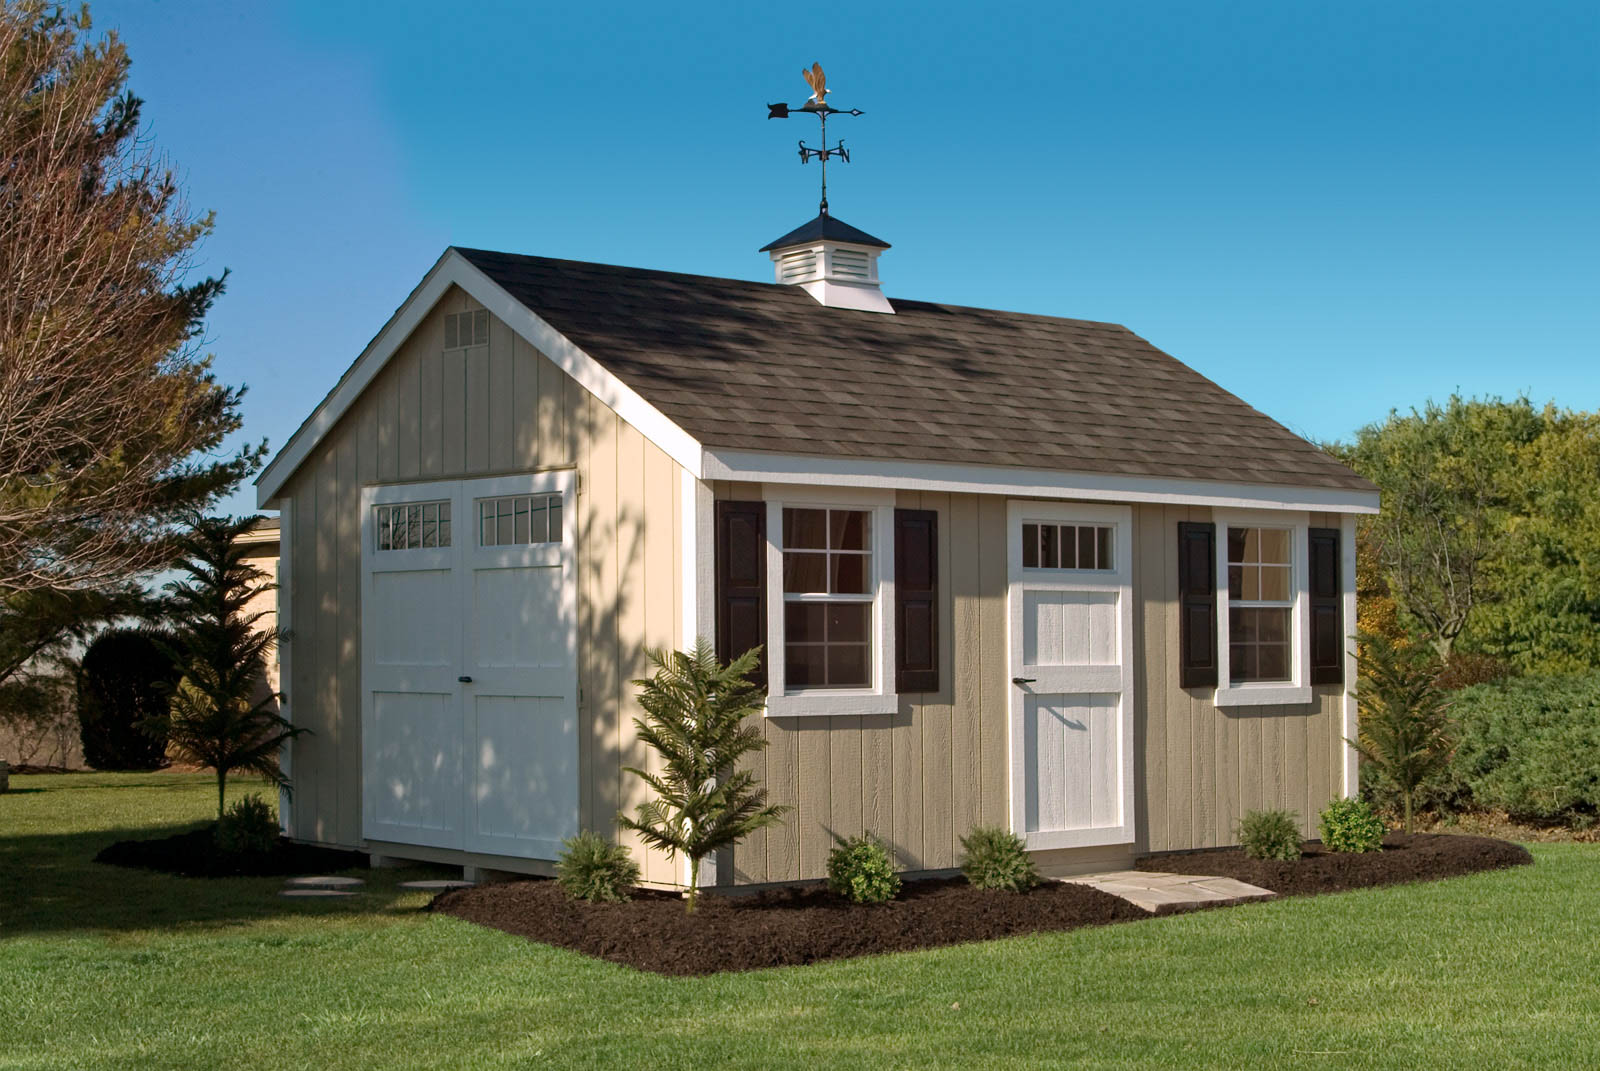 deluxe cape cod with beige wooden siding